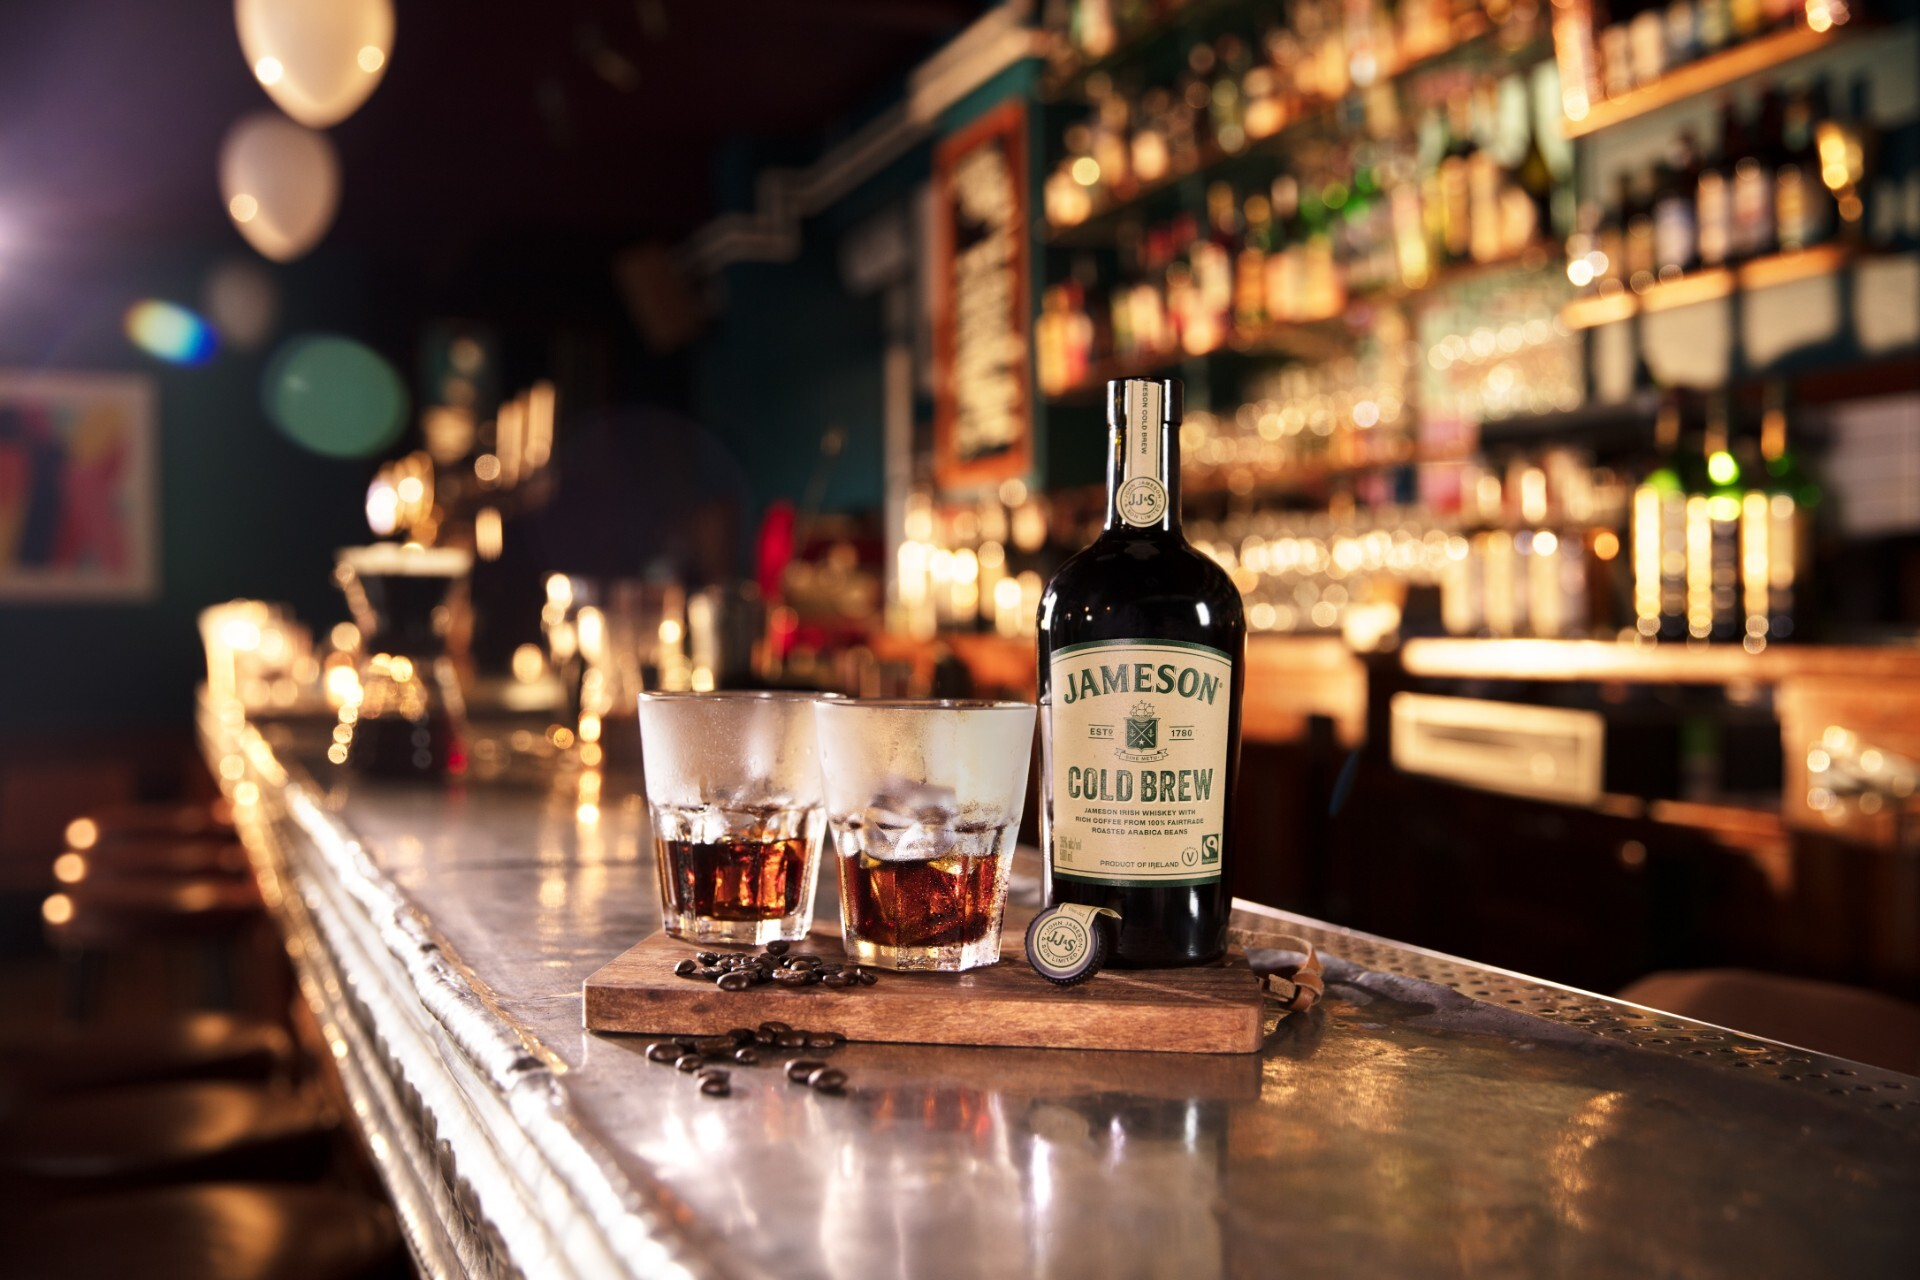 Try Jameson's new cold brew whiskey at these Sydney bars